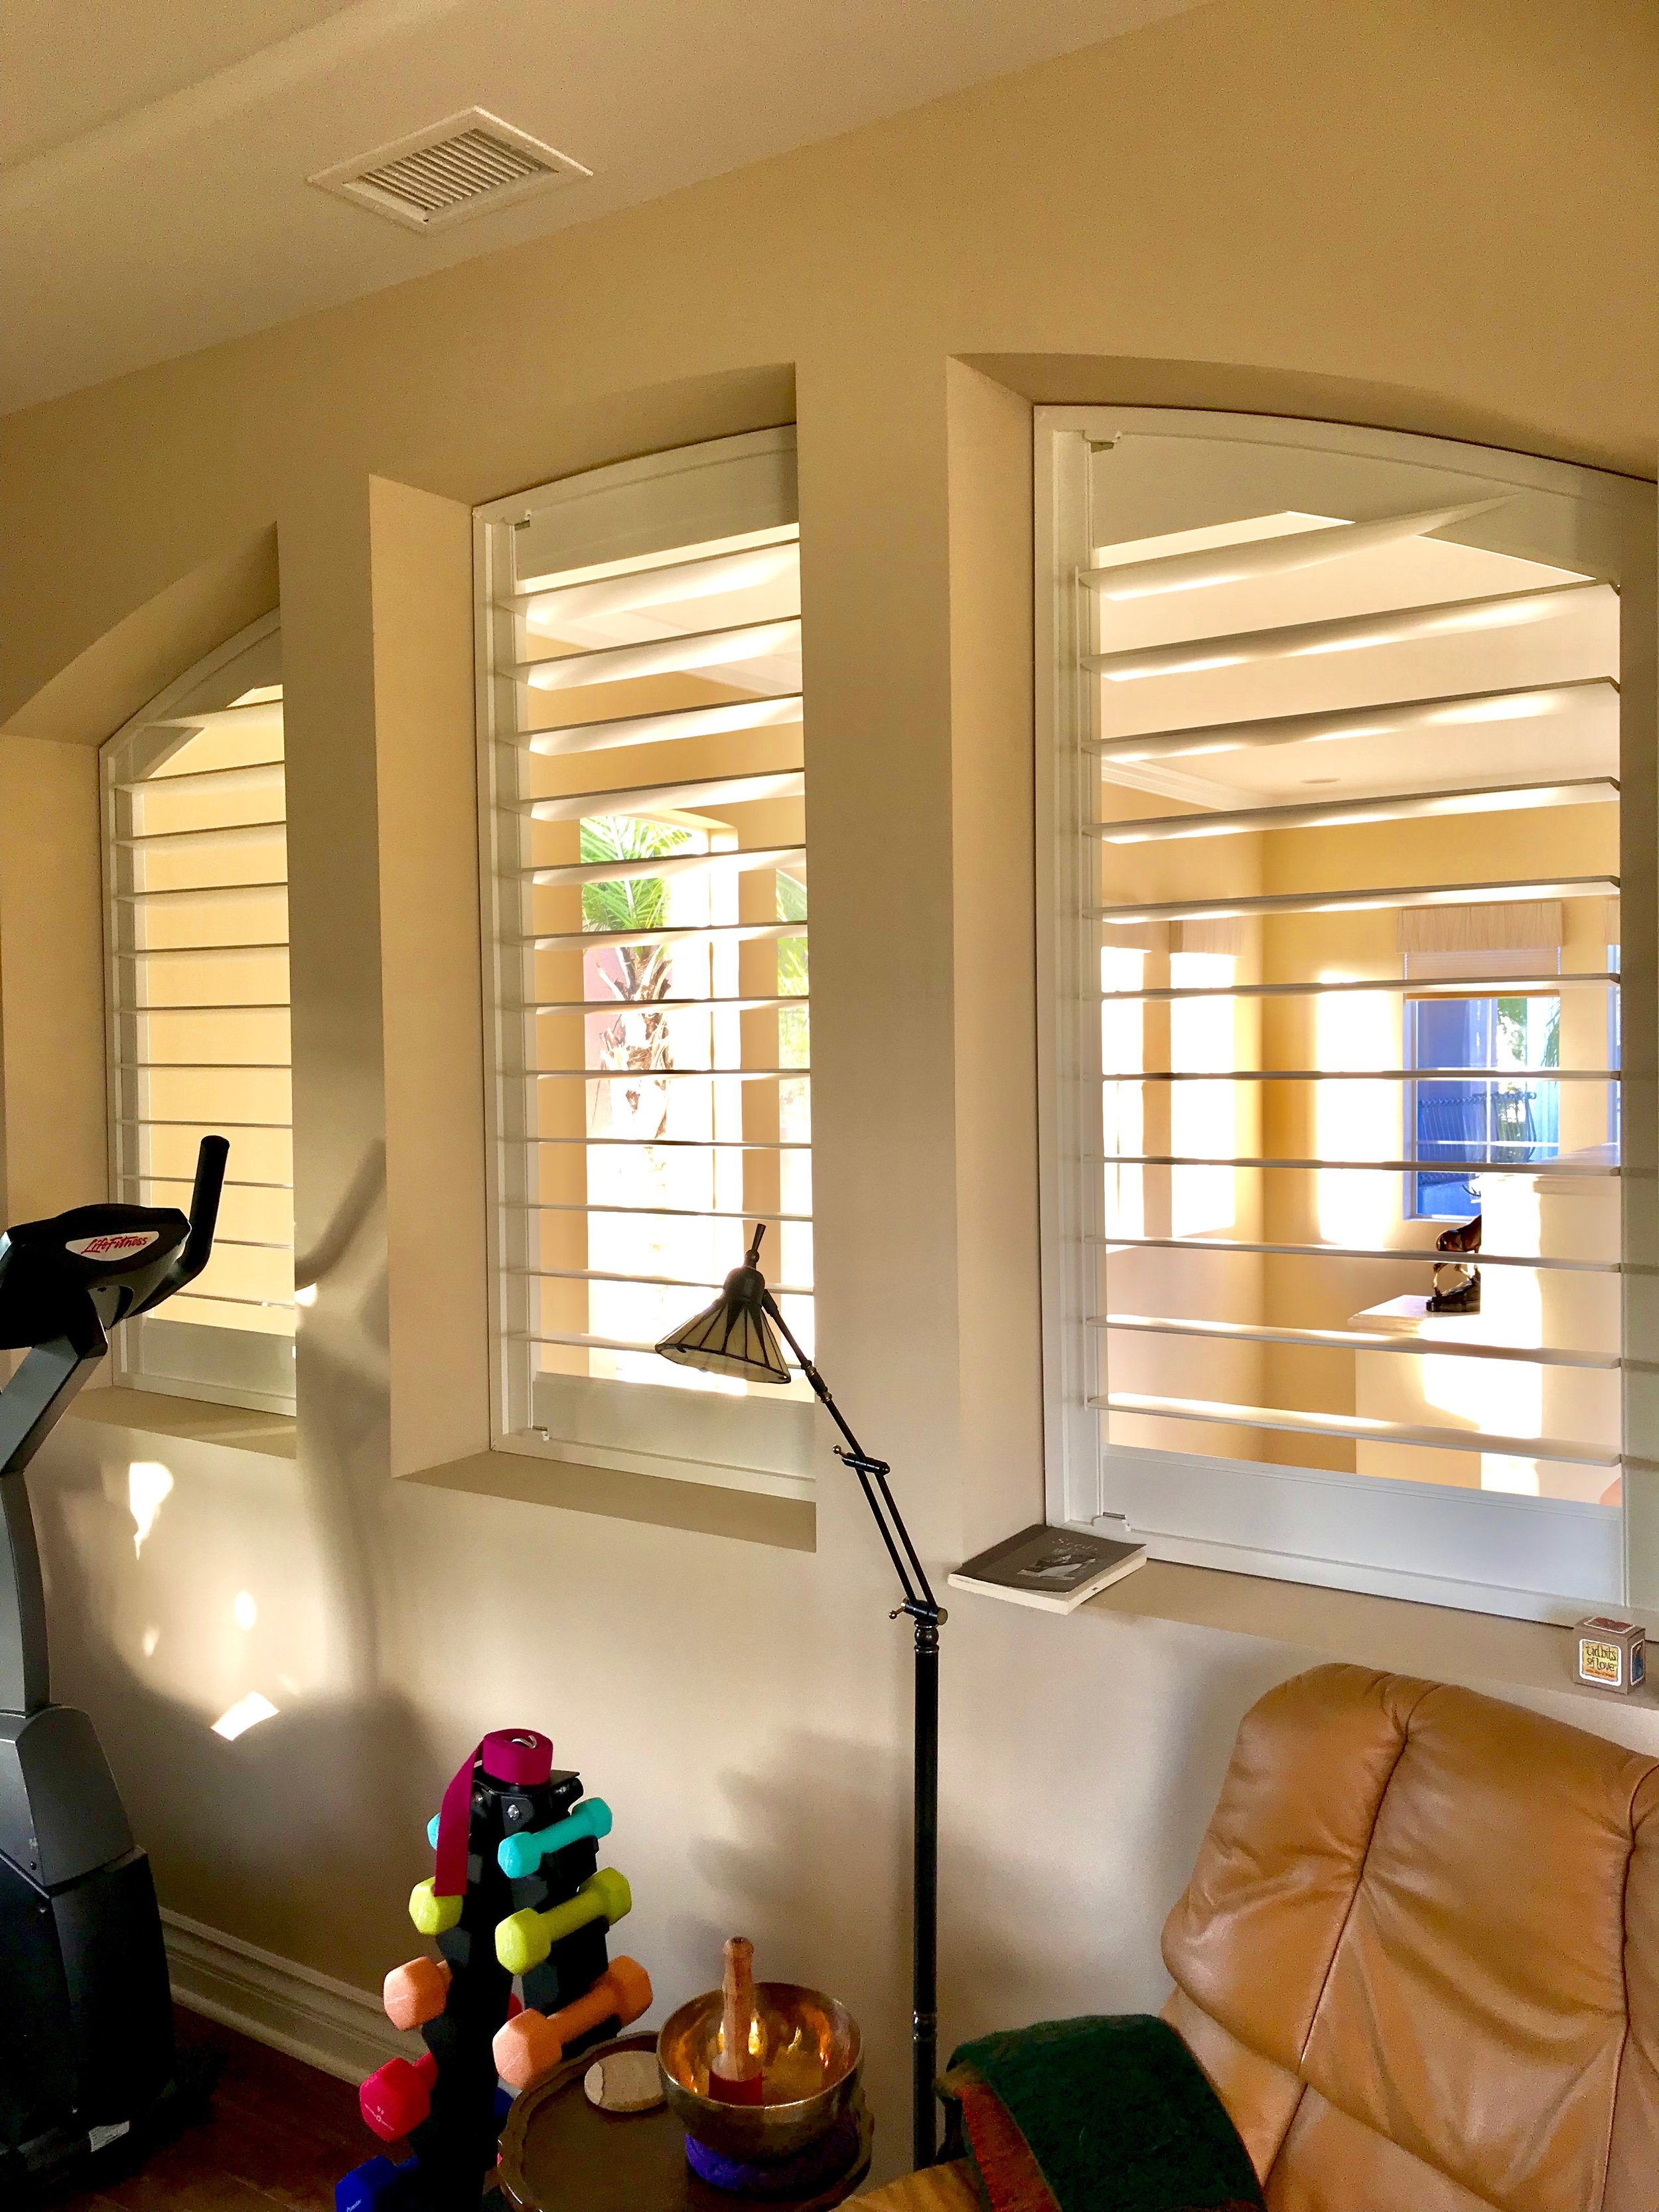 Gallery of Custom Blinds, Shutters & Power Shades in Carlsbad, California (CA) like Arch Treatments